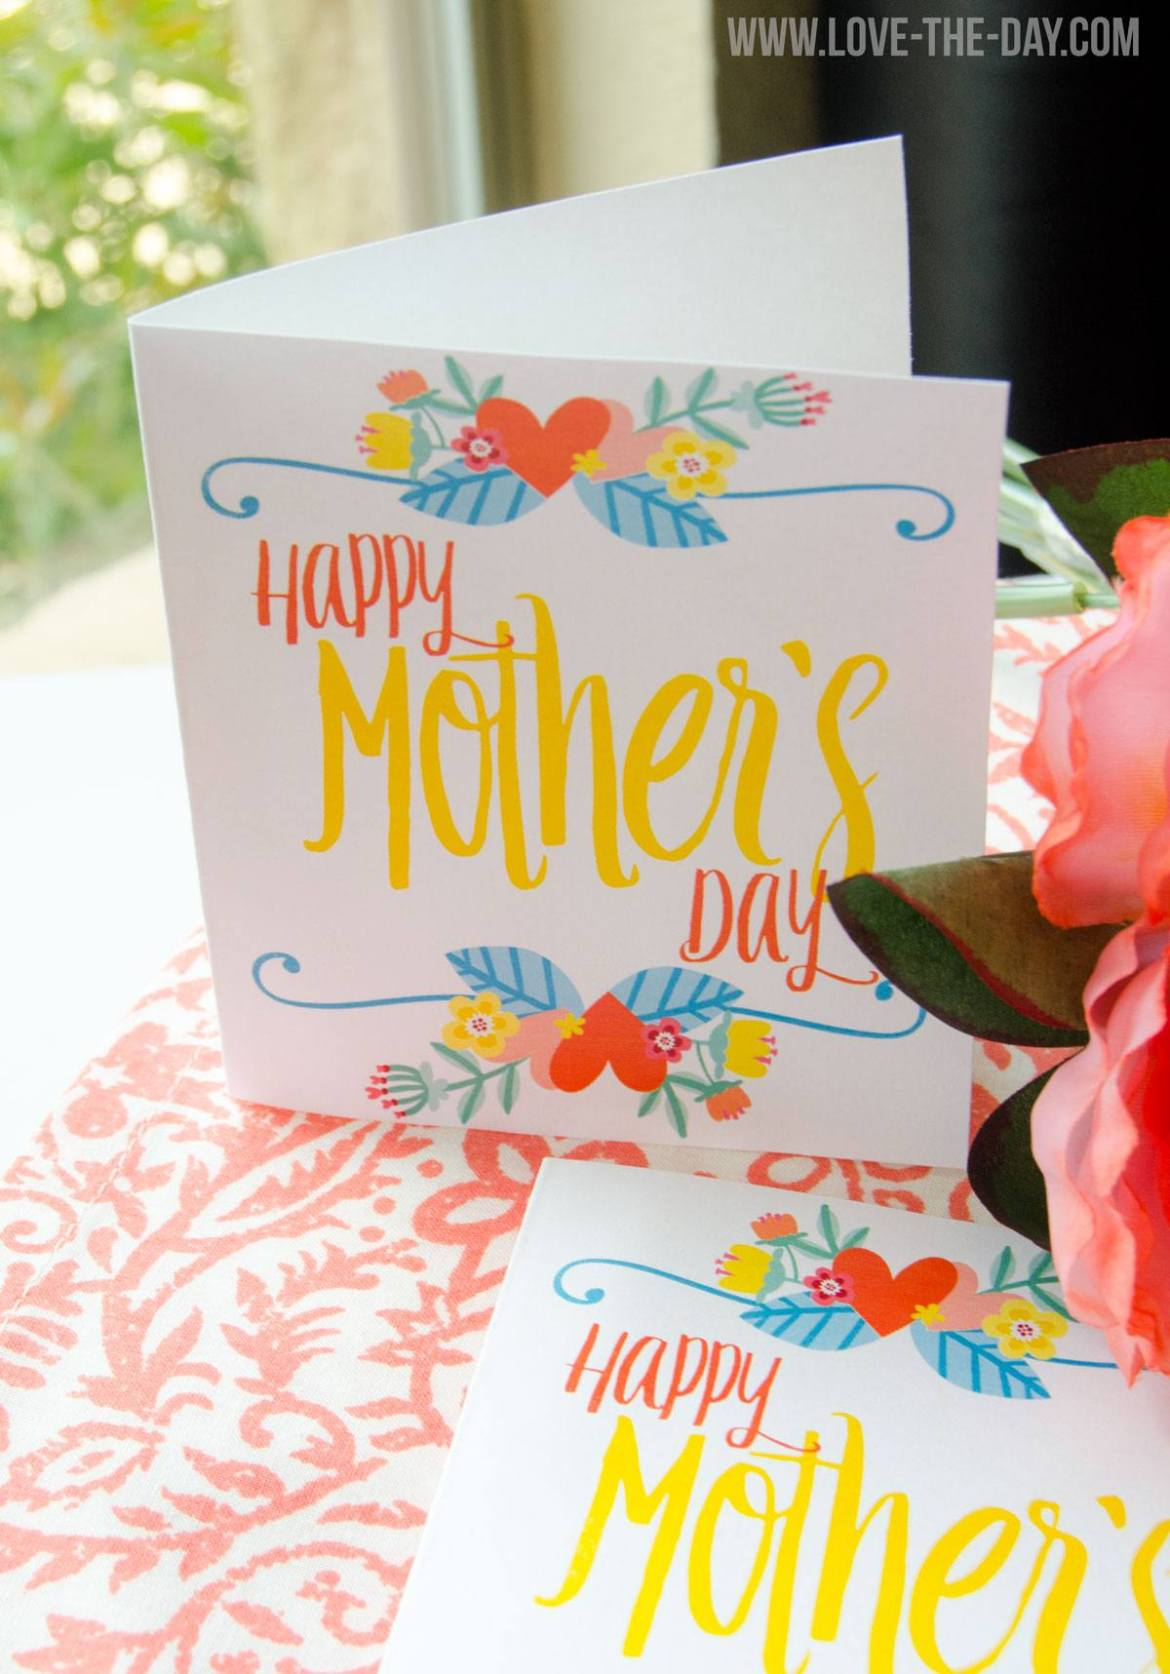 FREE PRINTABLE Mother's Day Card by Love The Day